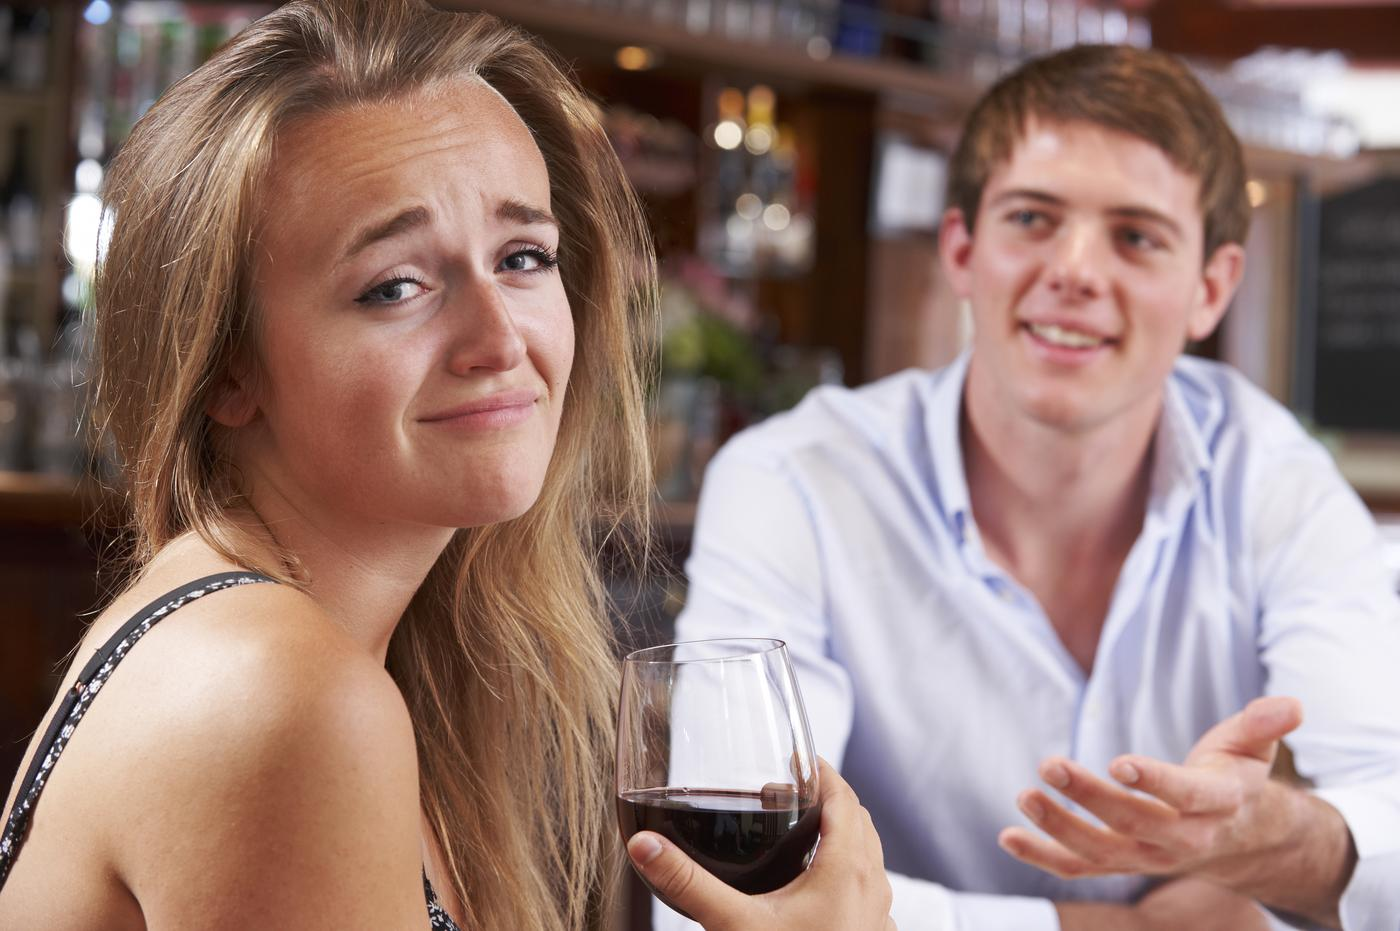 The very best of the #WorstDatein5Words hashtag